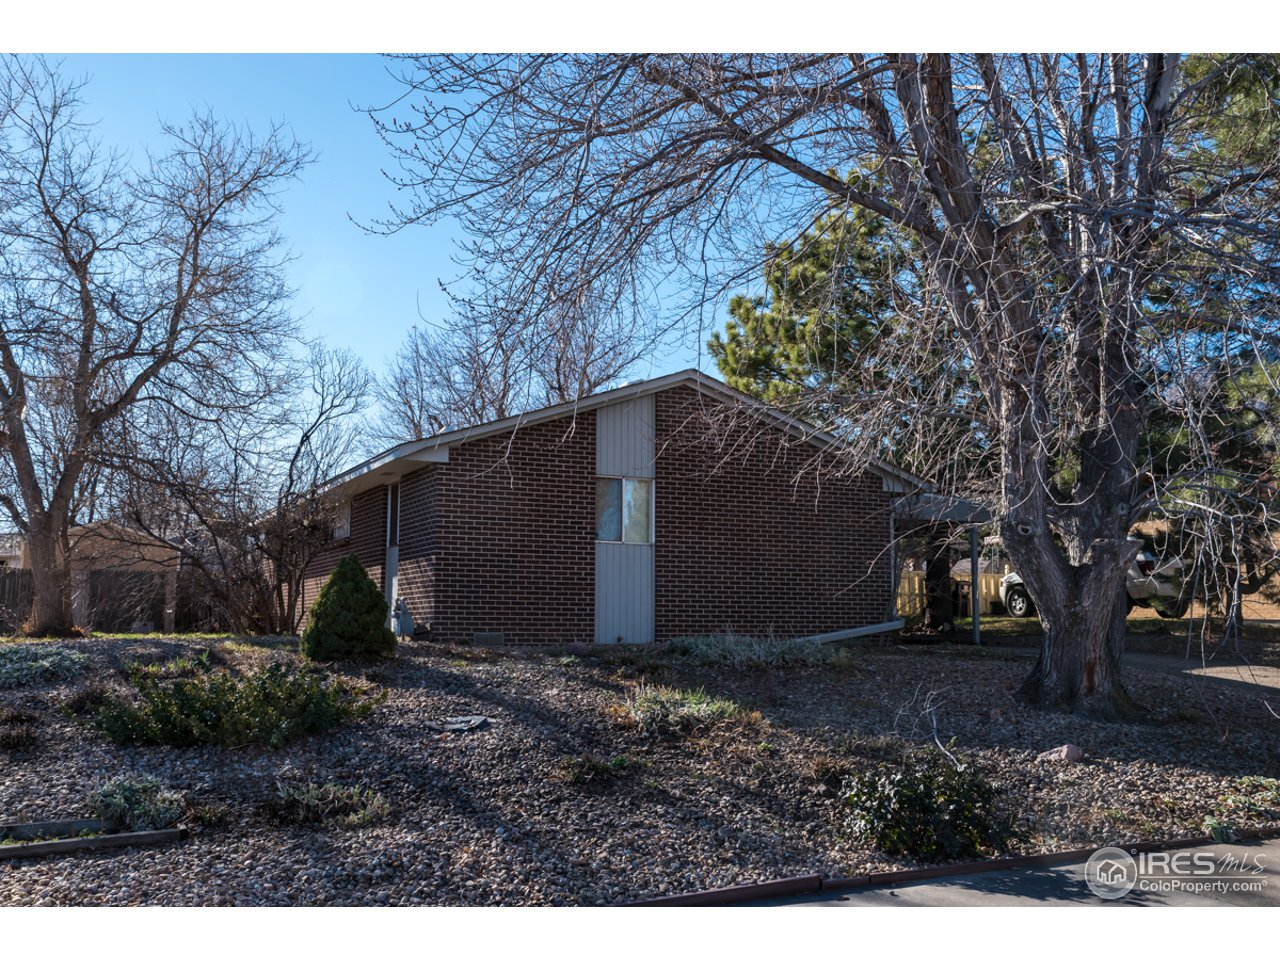 3190 Darley Ave, Boulder CO 80305